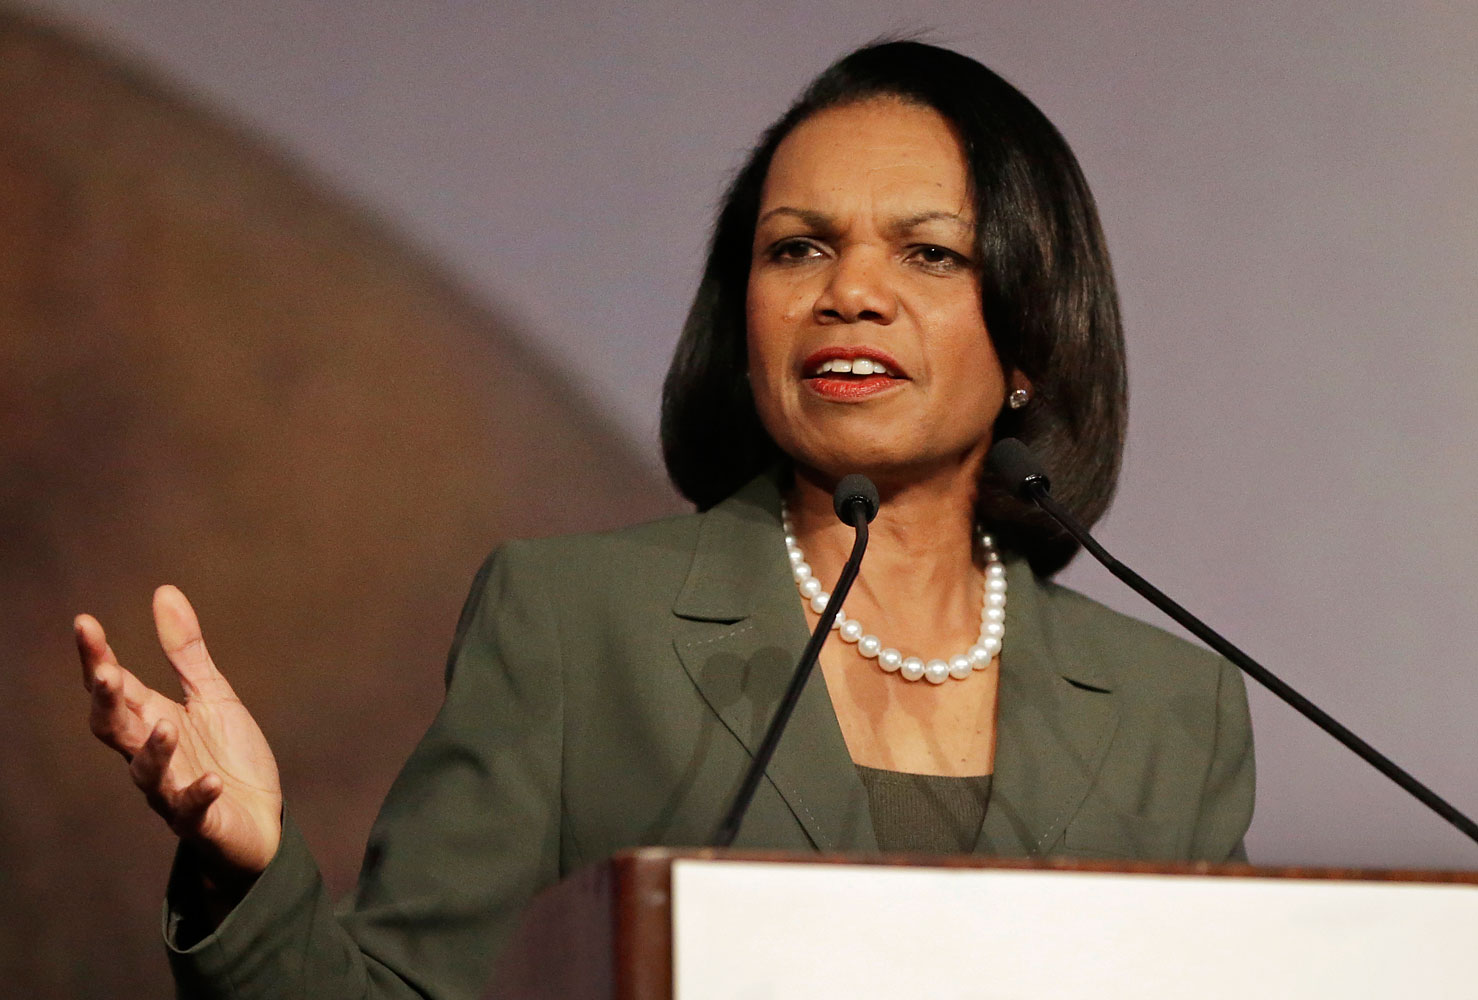 Former Secretary of State Condoleezza Rice speaks at the California Republican Party 2014 Spring Convention in Burlingame, Calif, March 15, 2014.